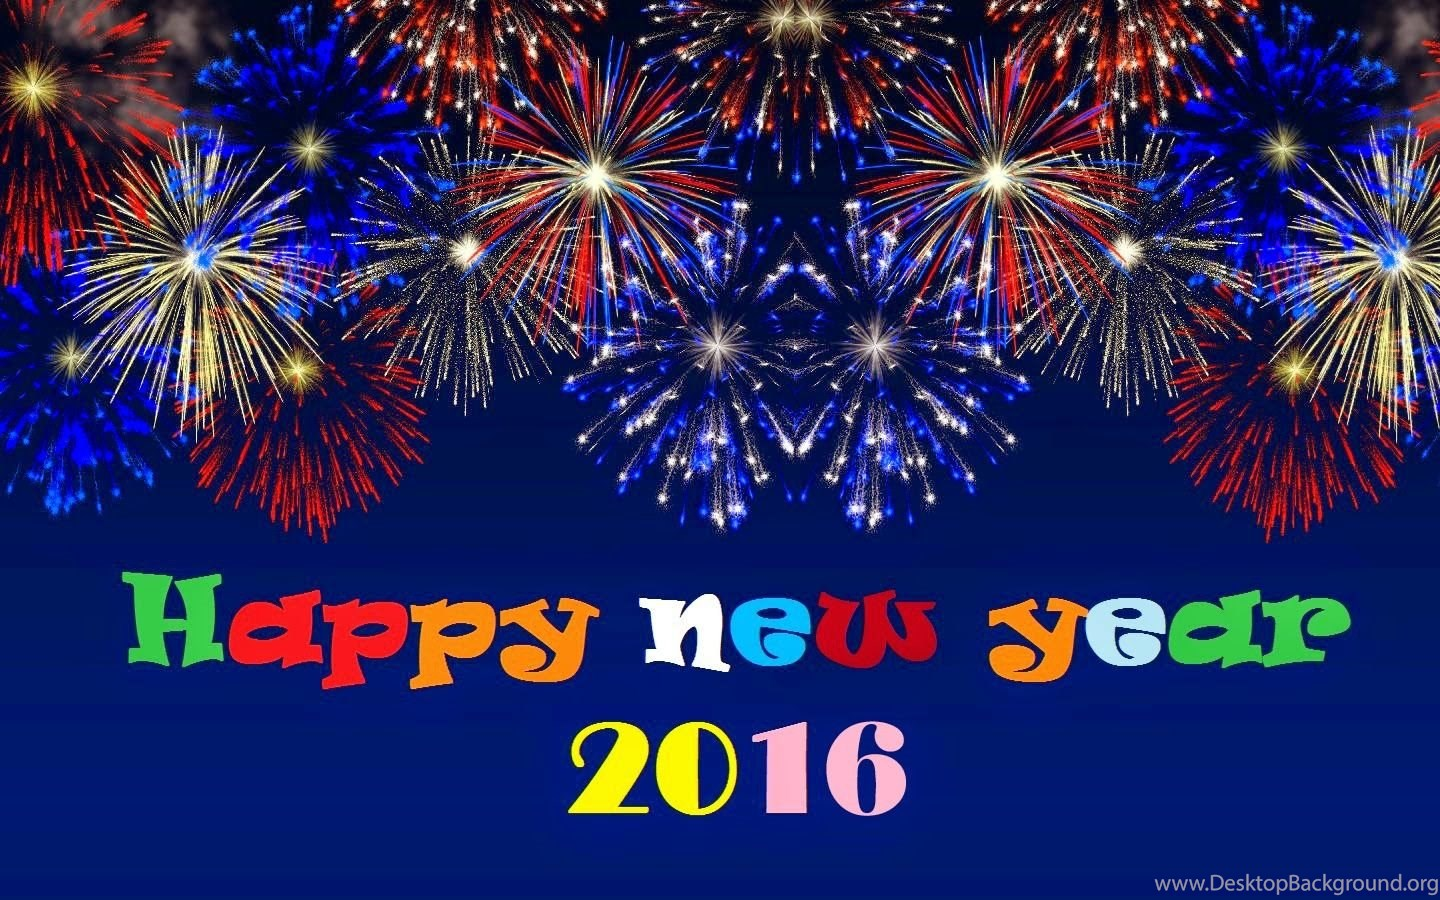 Happy New Year 2016 Hd Wallpapers Images Free Download